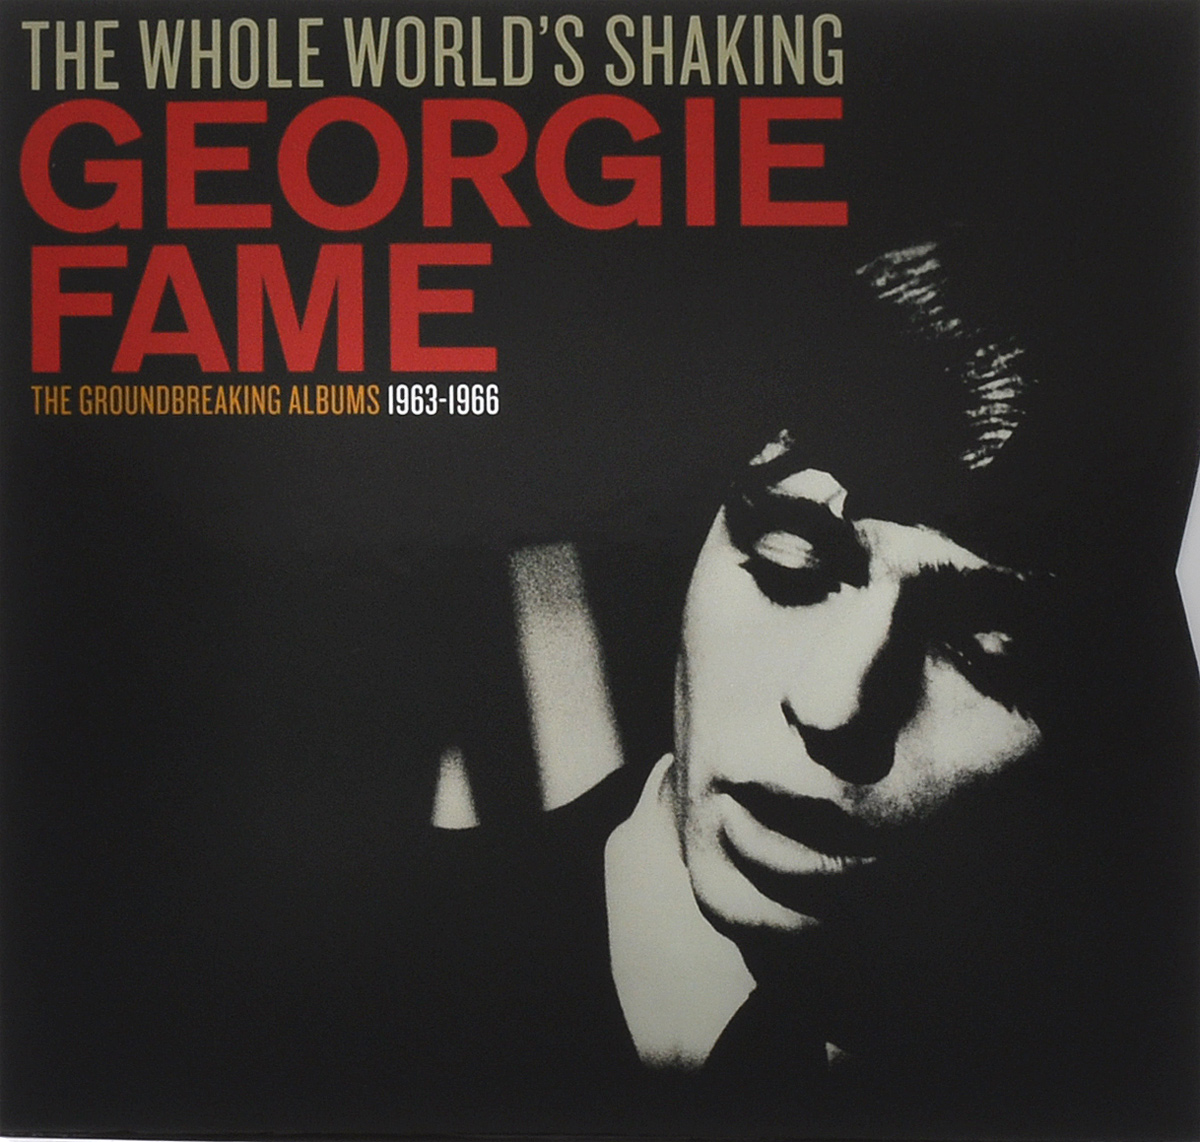 Джорджи Фэйм Georgie Fame. The Whole World's Shaking. The Groundbreaking Albums 1963-1966 (4 LP) 2 1 2 4 2 7 3 0 3 6m carbon telescopic spinning pole saltwater casting sea fishing rod